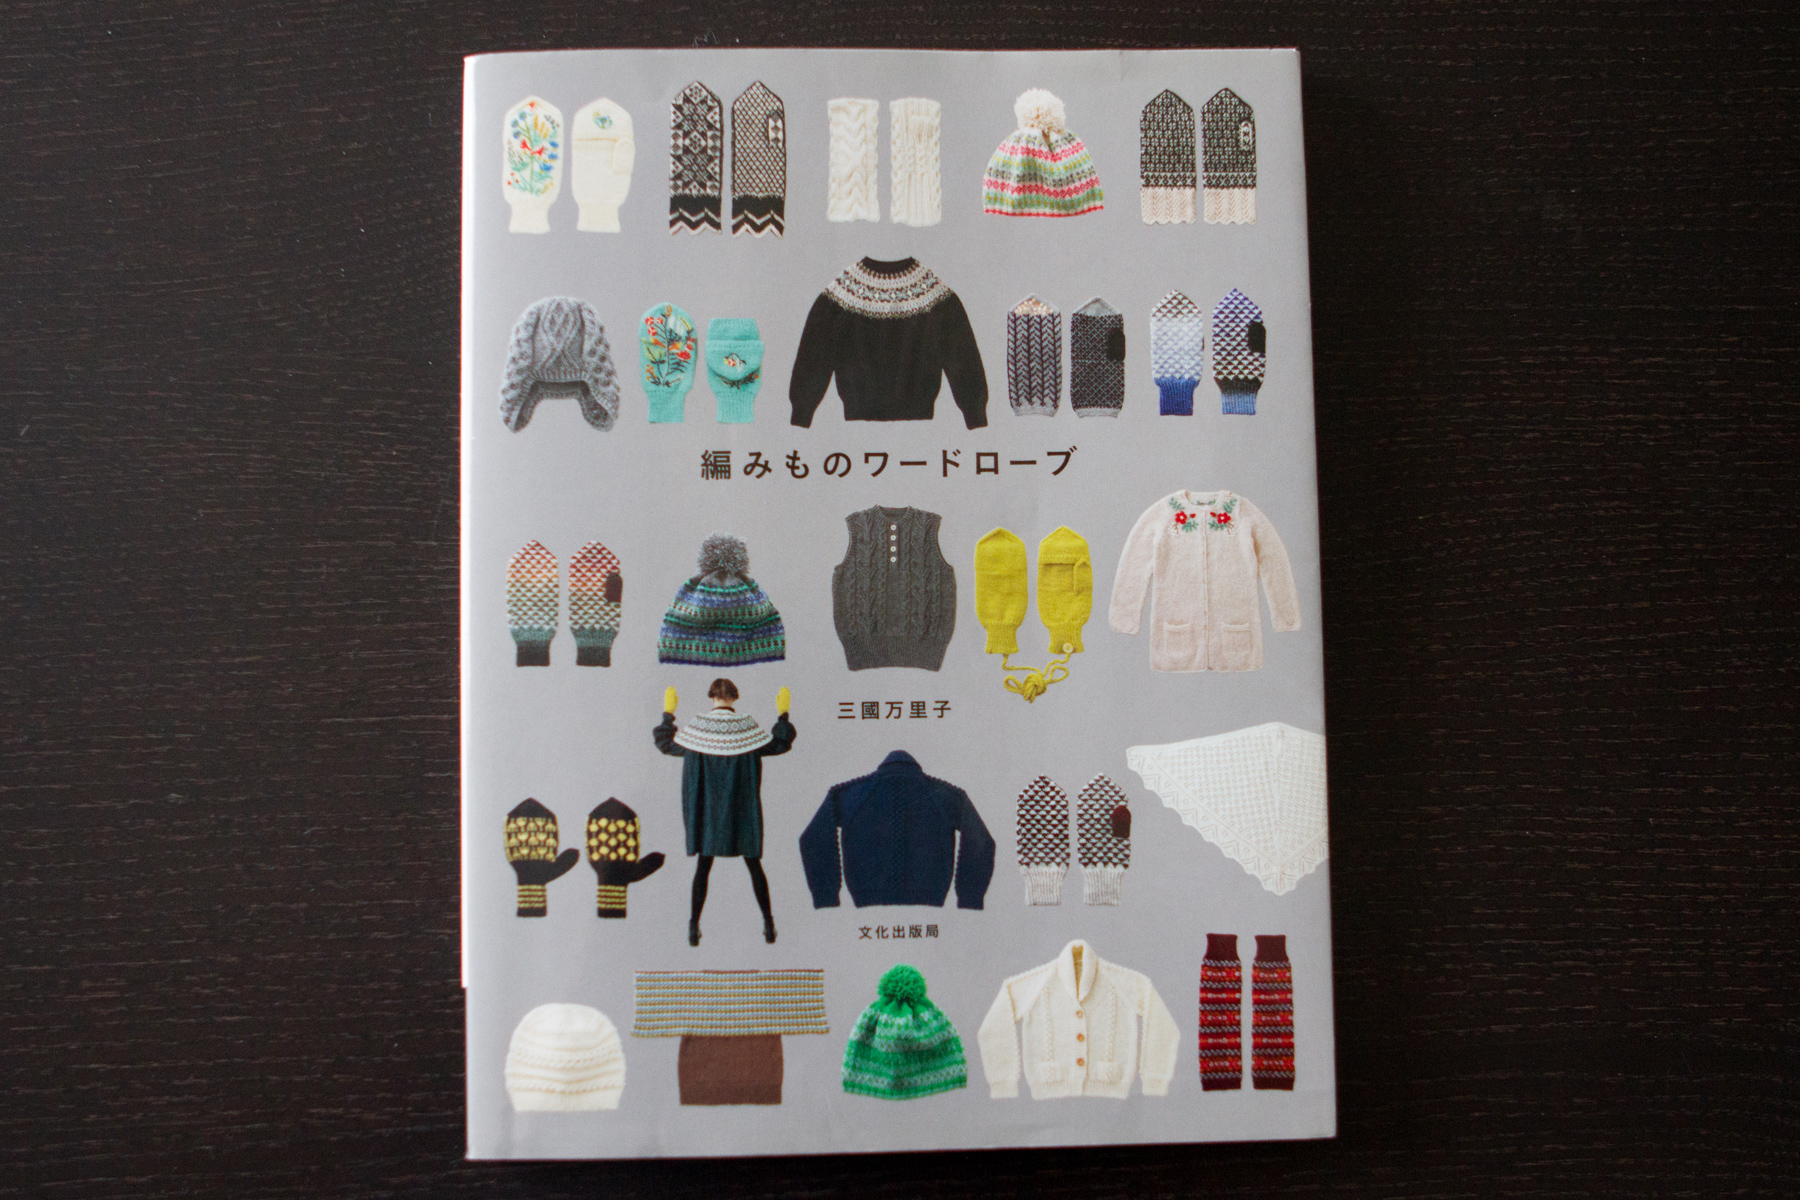 The pattern I used is from this book by Mariko Mikuni.